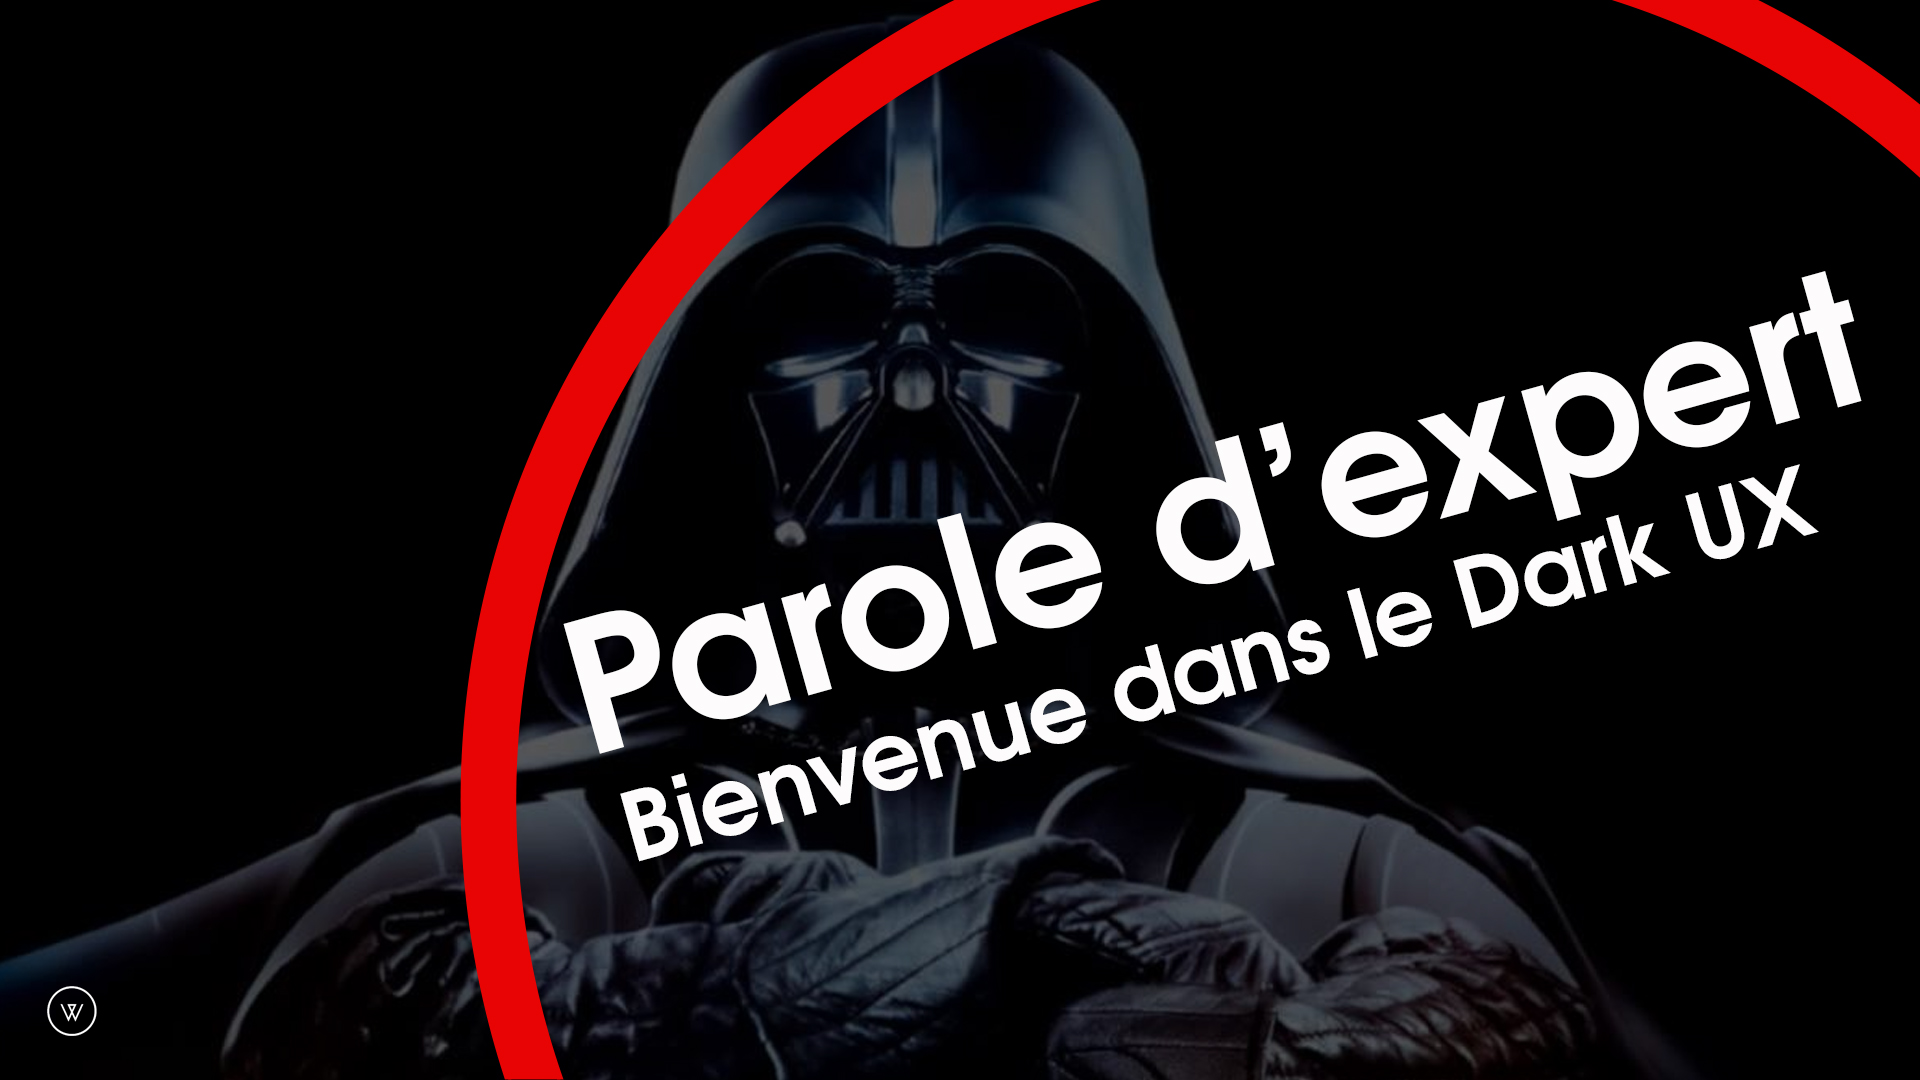 Paroles d'expert : Dark UX